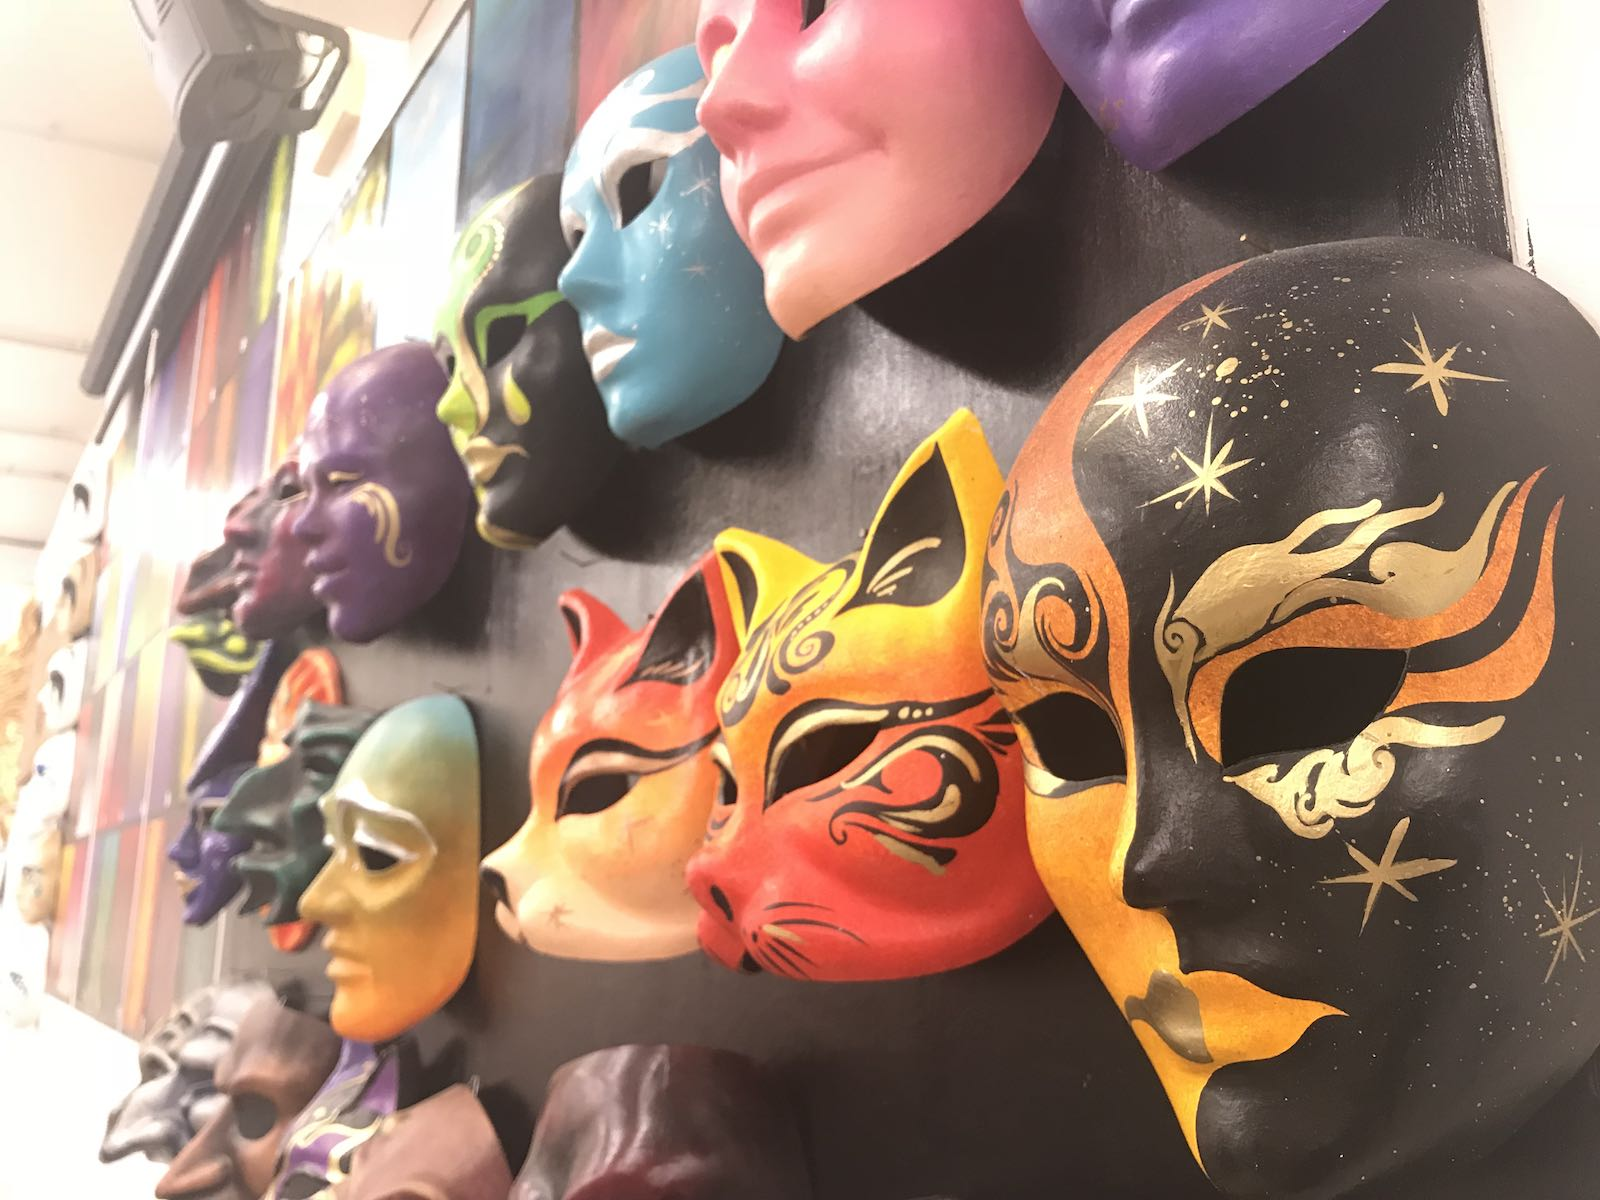 Masks on the wall at the studio